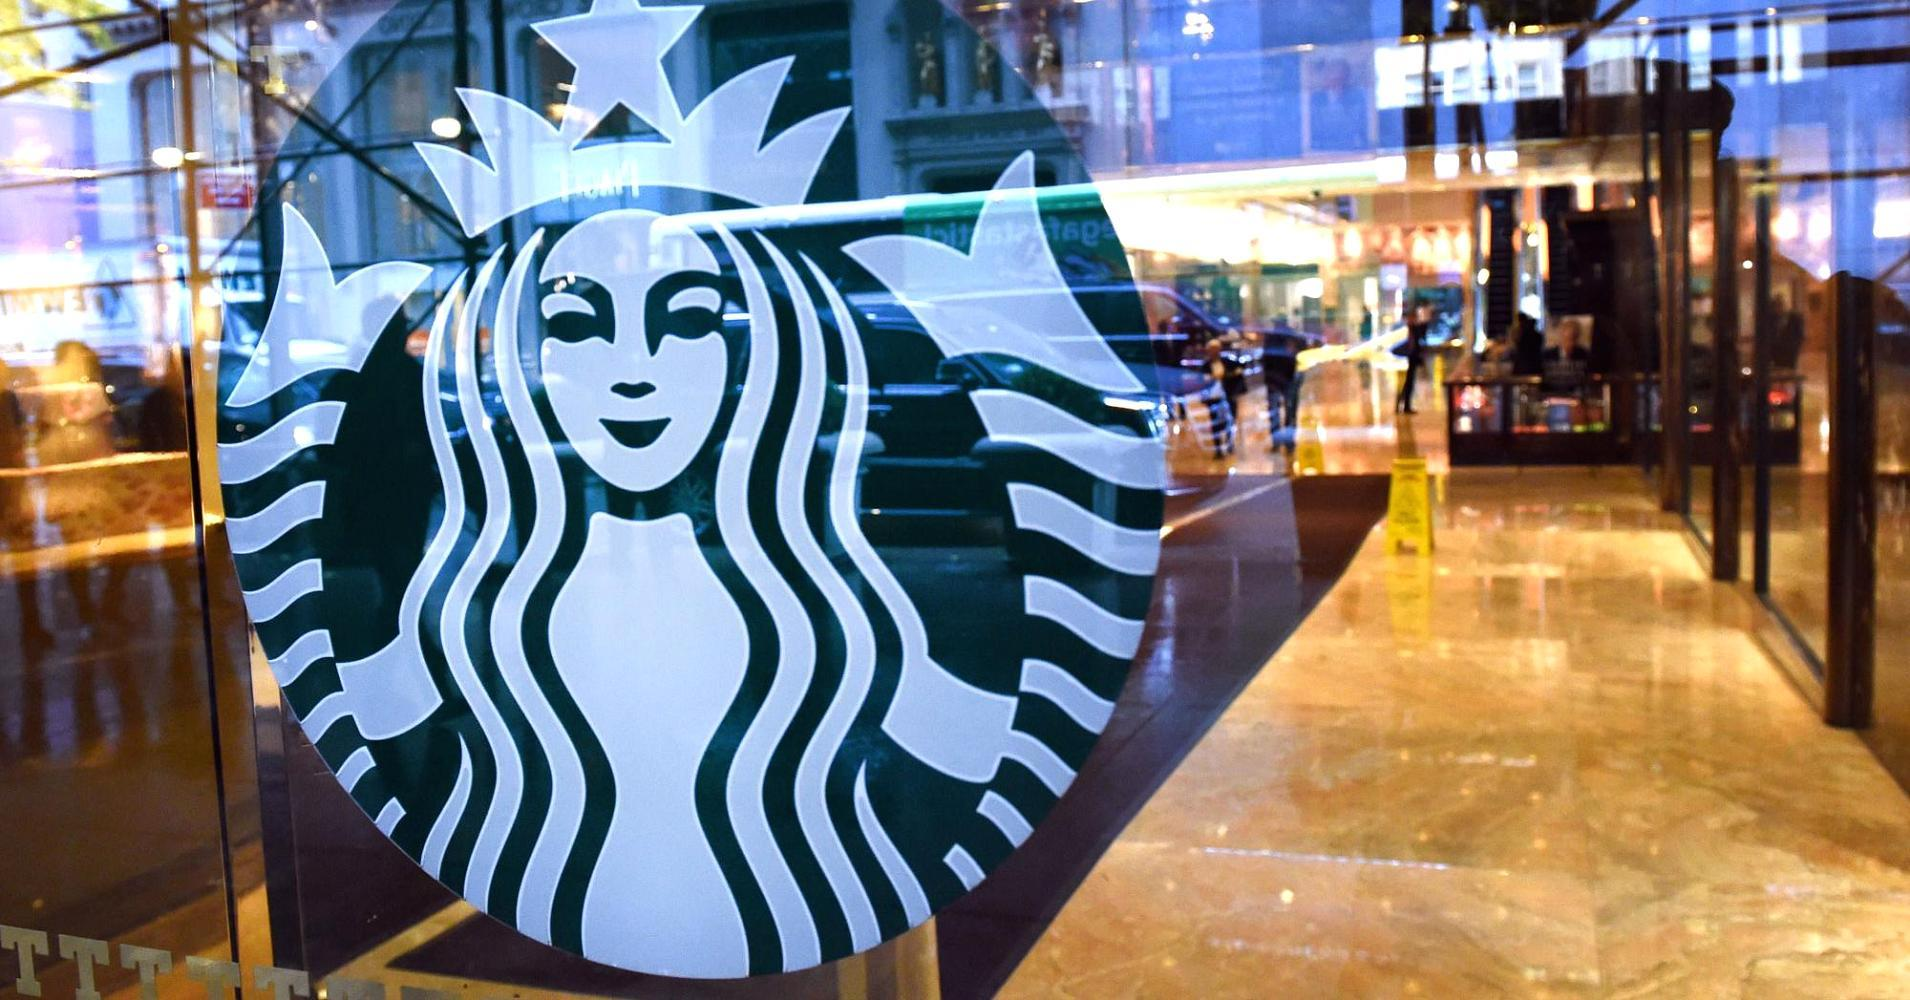 Big data: Starbucks knows how you like your coffee